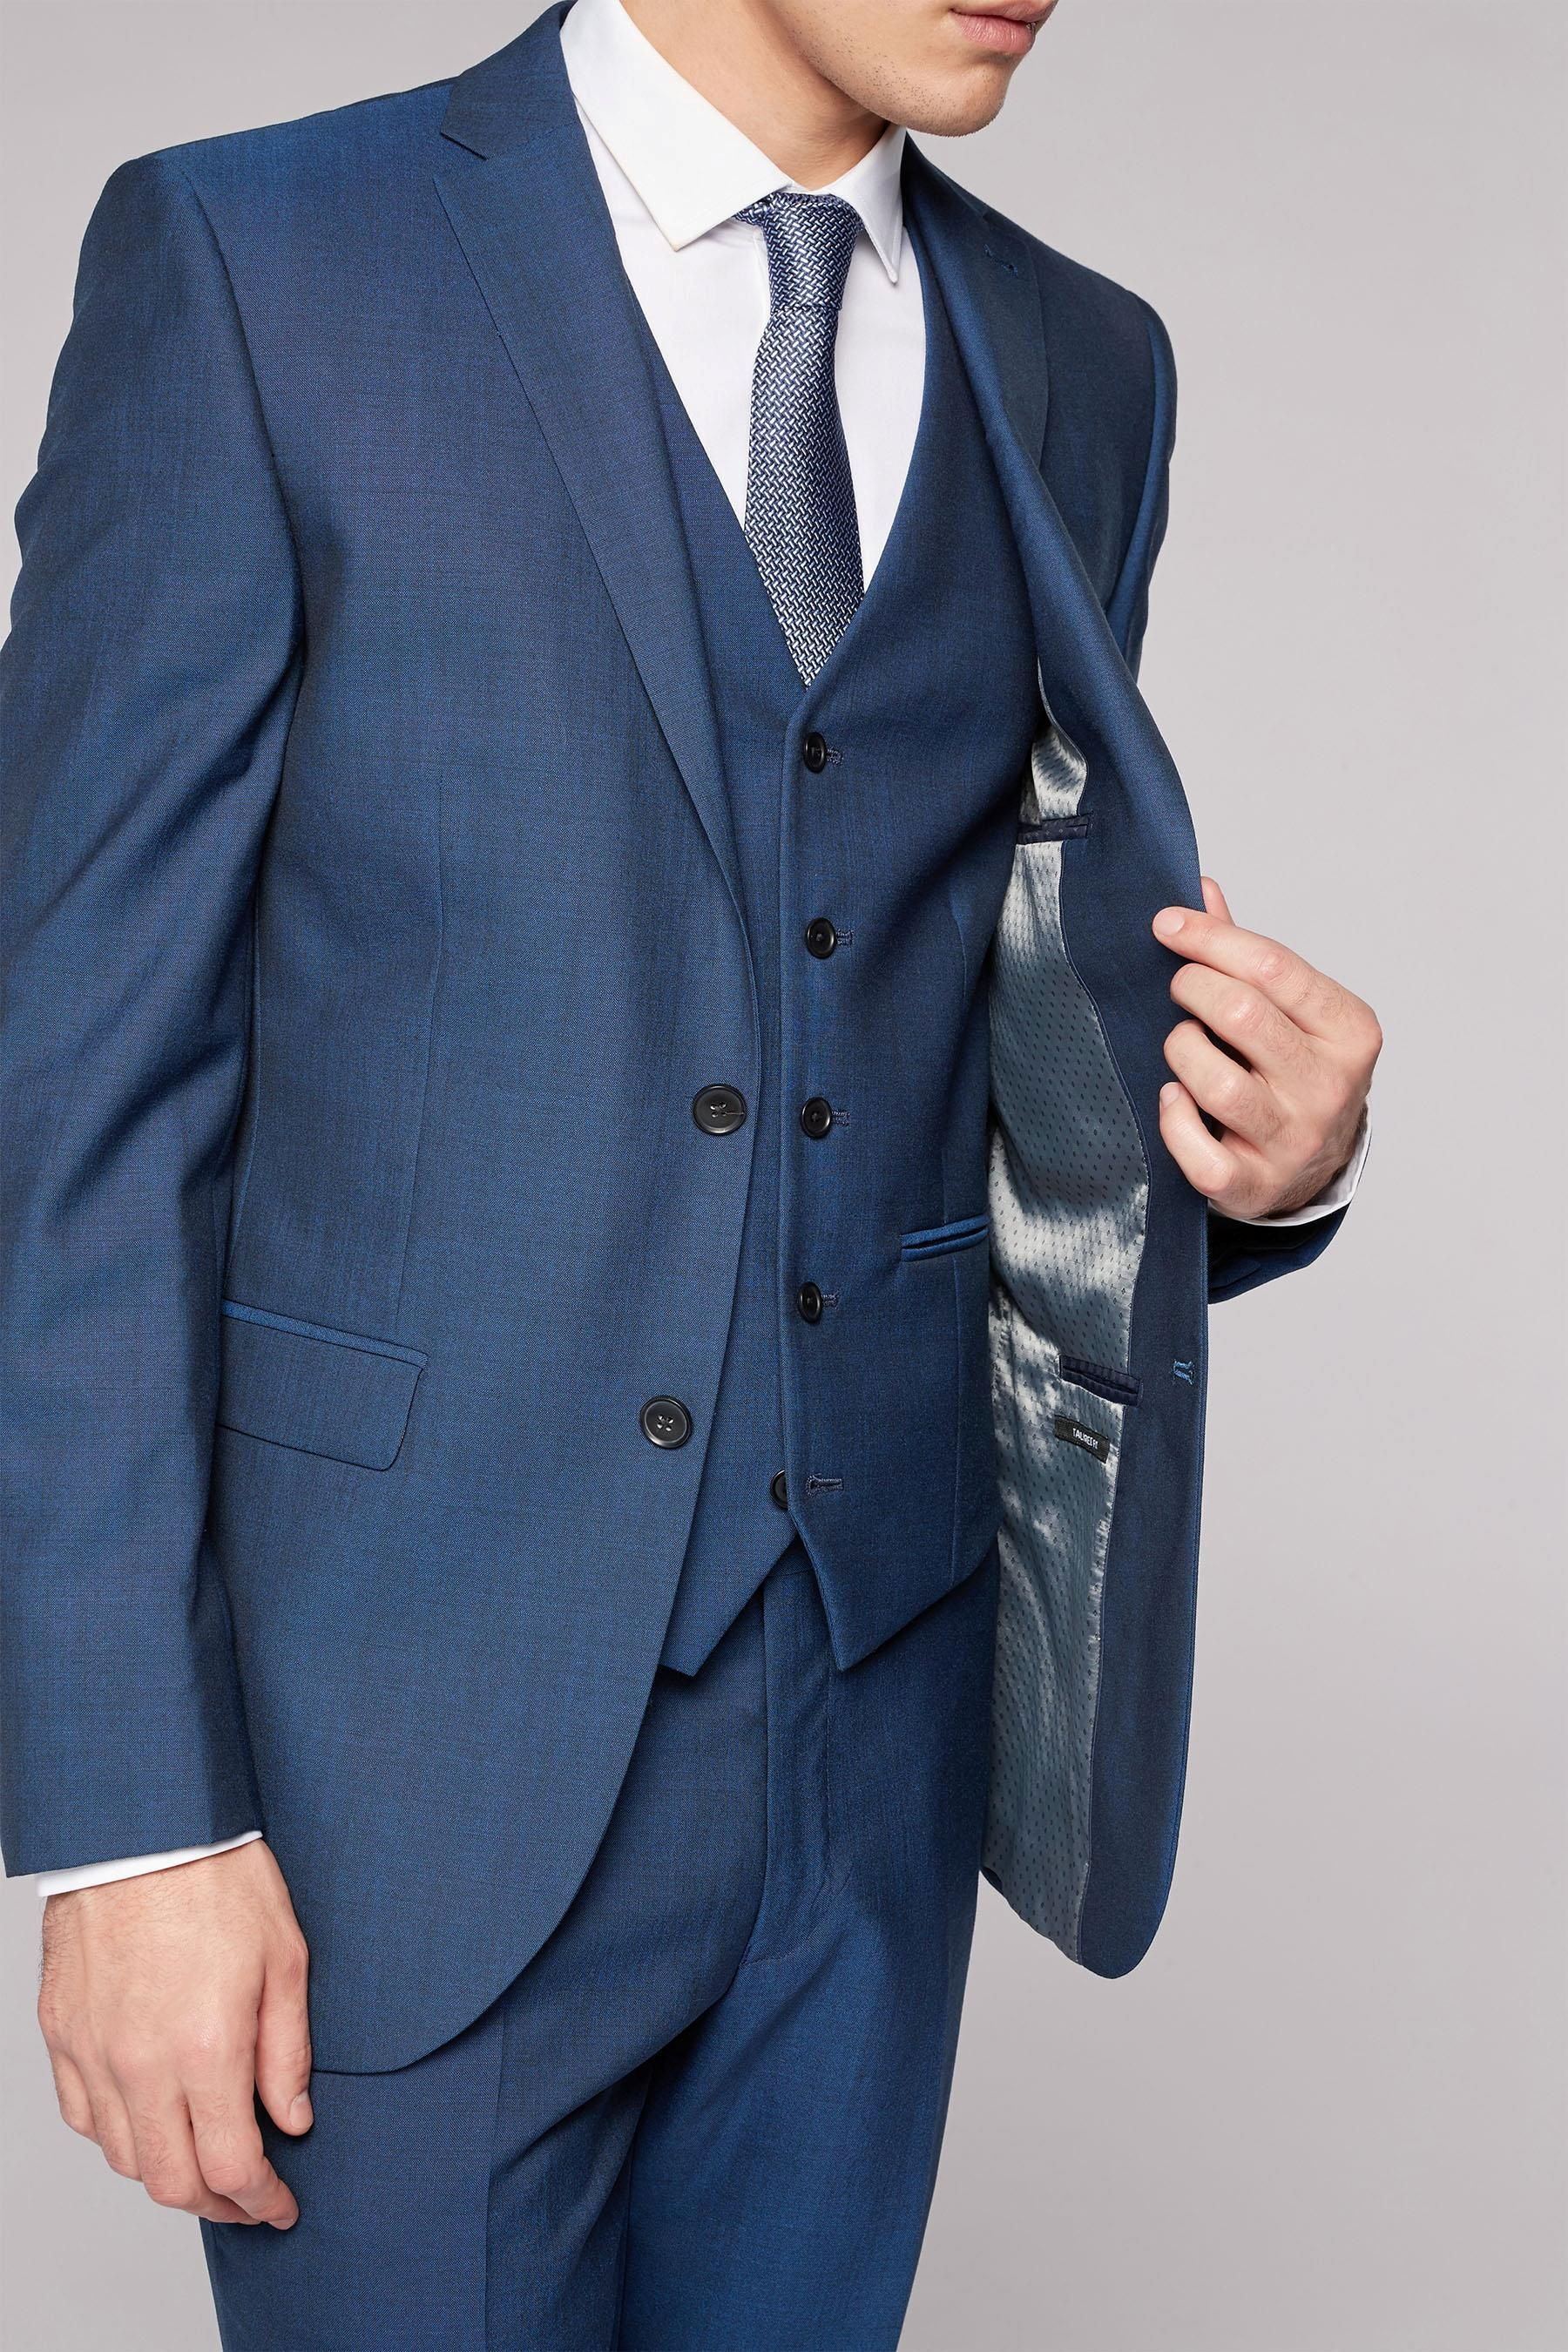 Buy Blue Pure Wool Suit: Jacket from the Next UK online shop ...